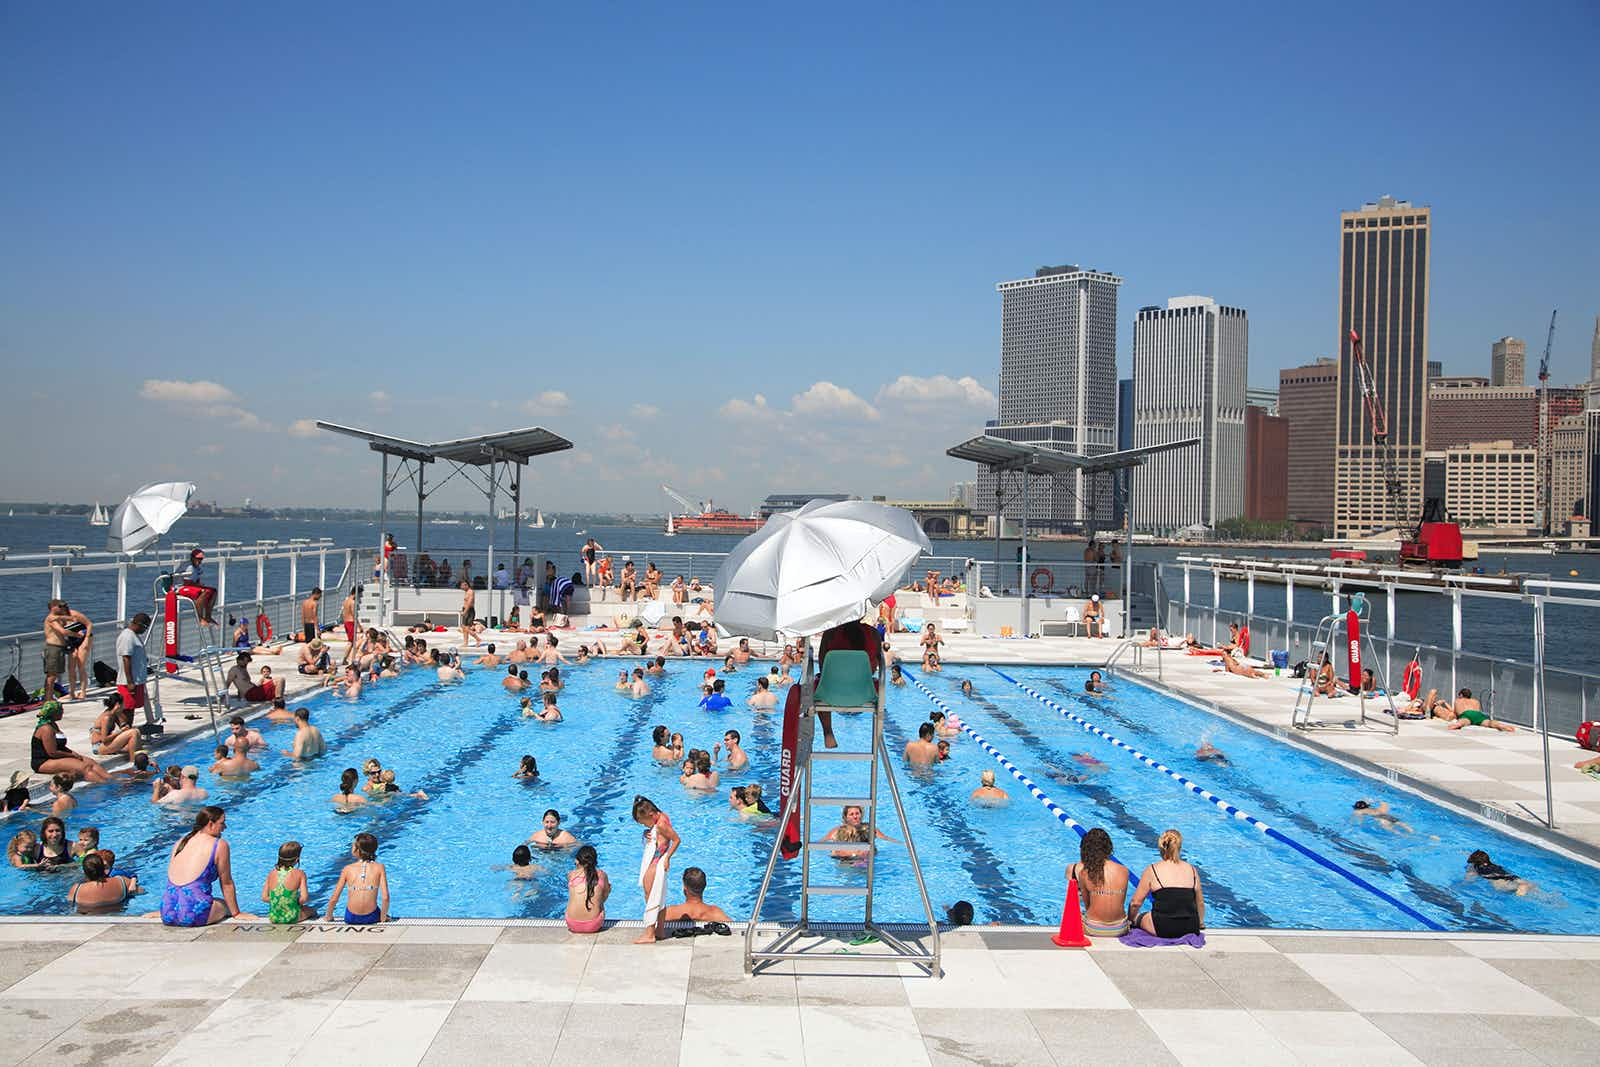 ADJY9M Floating Pool Lady Barge Brooklyn Bridge Park Beach with view of Manhattan skyline Brooklyn Heights New York City USA. Image shot 2007. Exact date unknown.